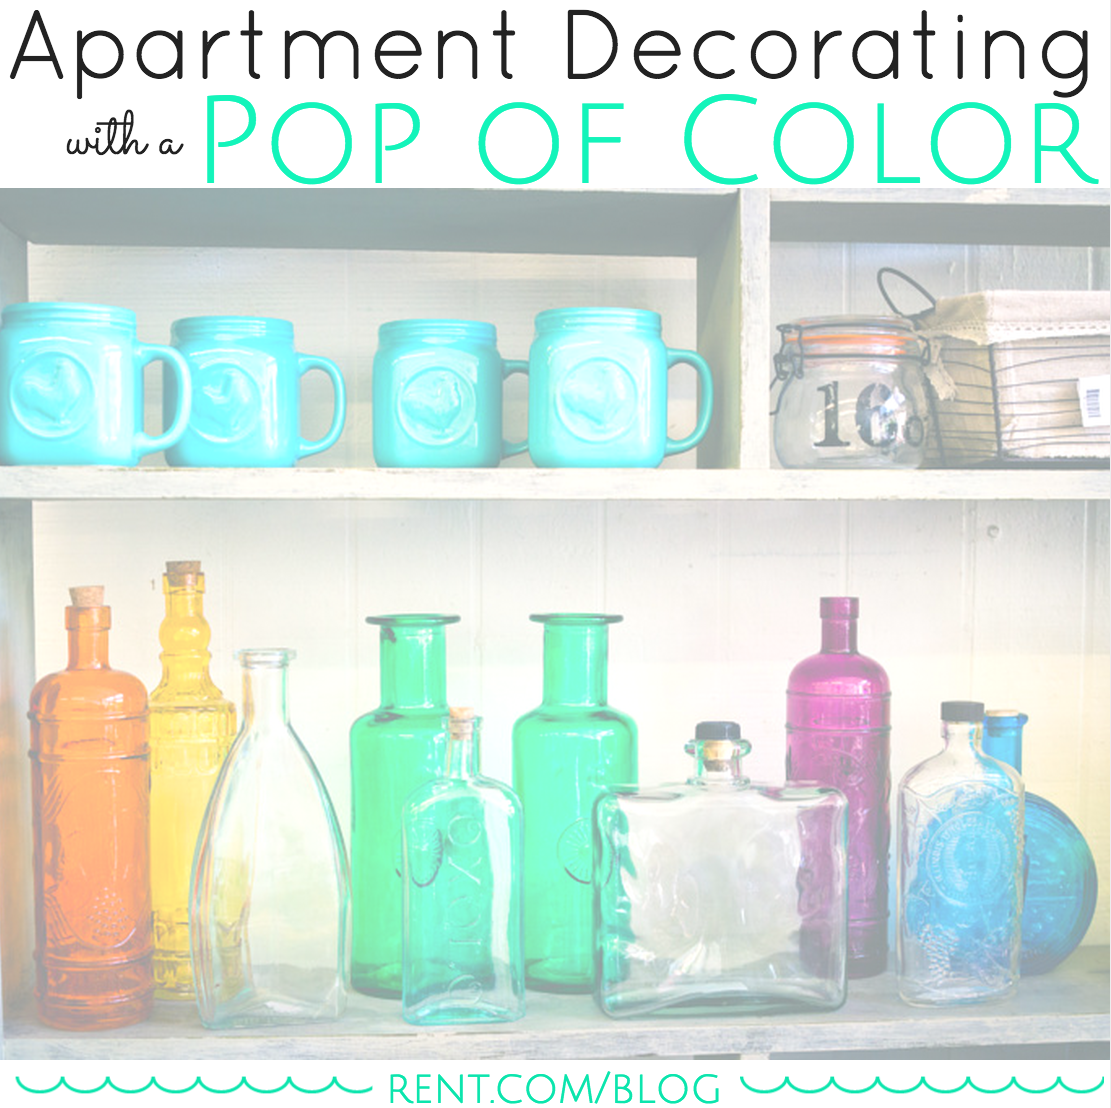 Apartment Decorating with a Pop of Color